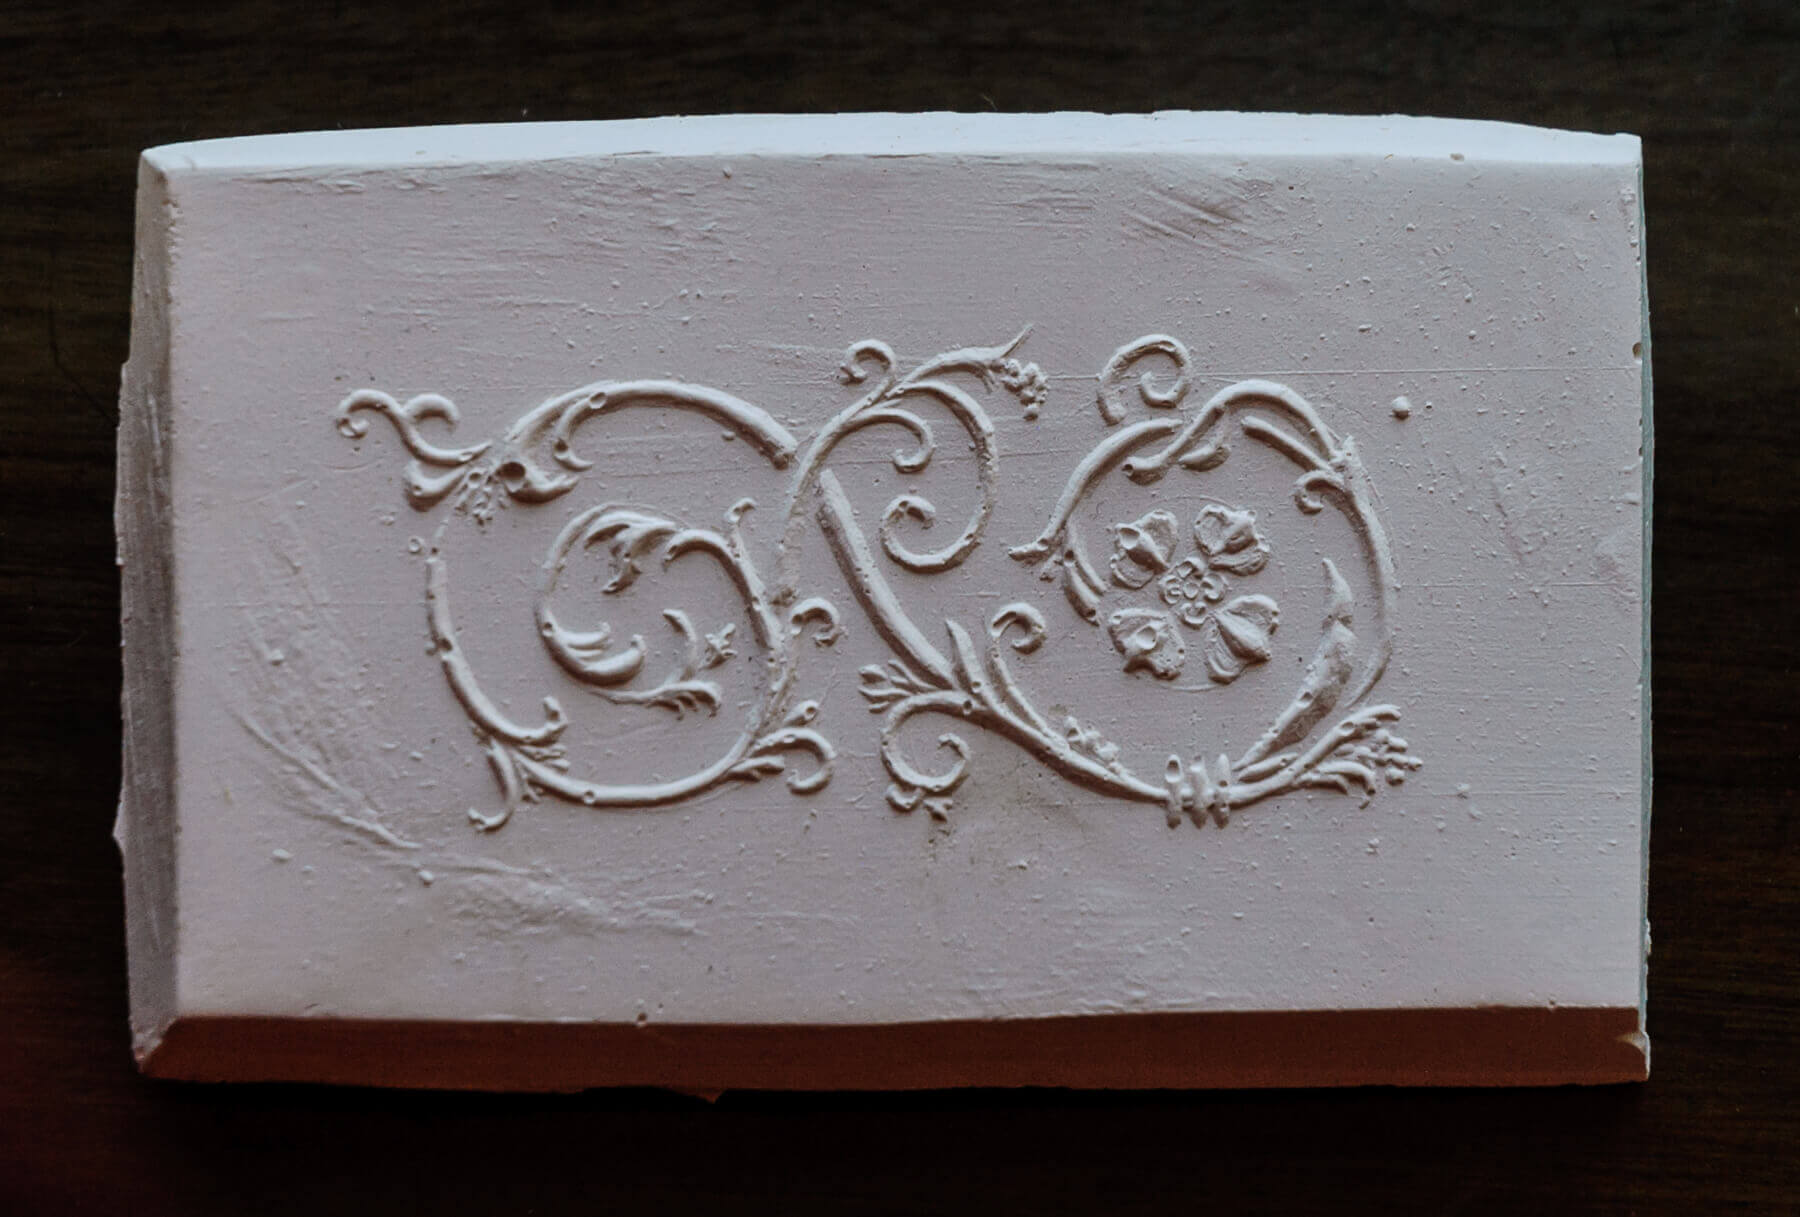 This is Ashton's plaster-positive made from his handmade motif for the face of the frame sides.